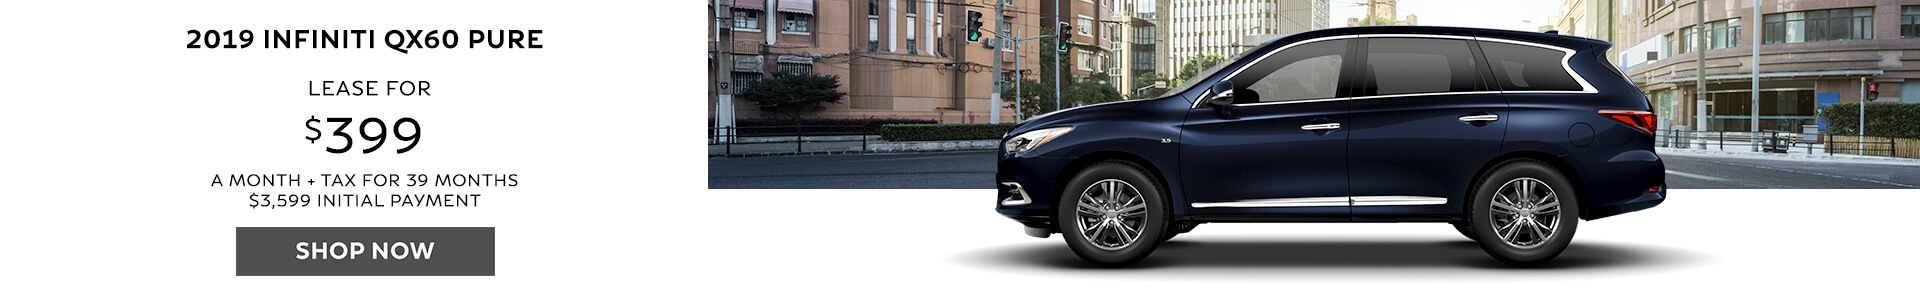 QX60 Lease for $399